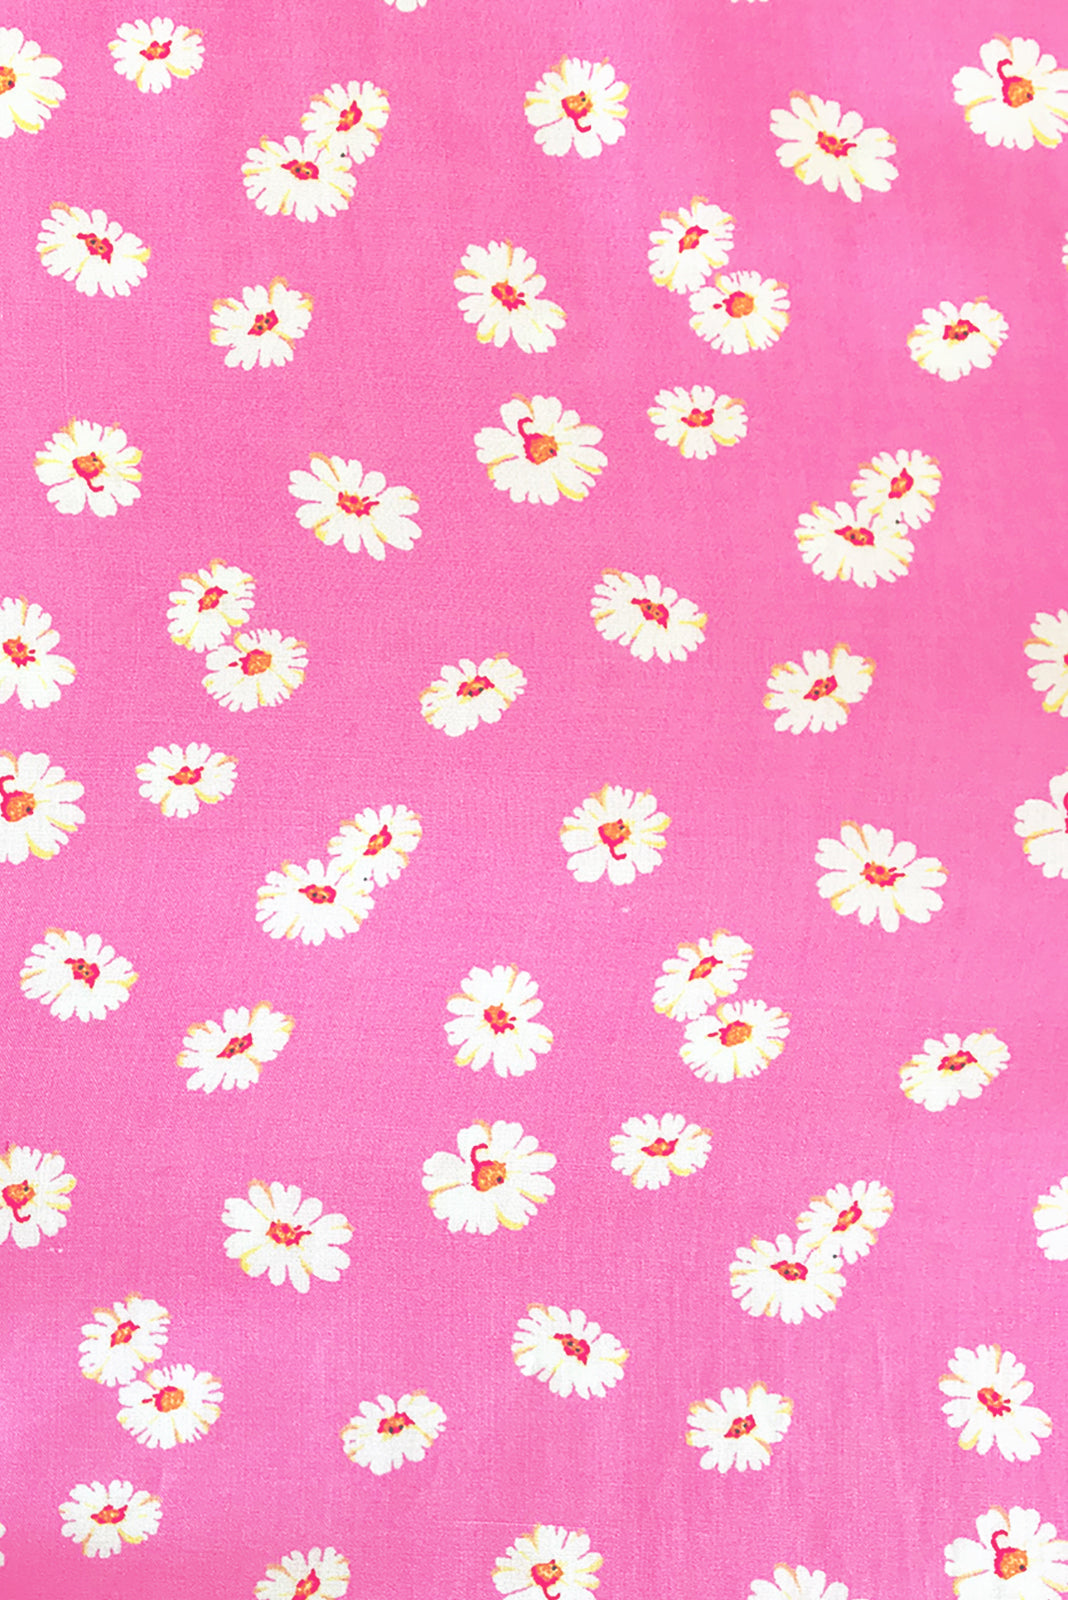 Fabric swatch of Lizzie Pink Spring Dress featuring 100% rayon in bright, taffy pink base with sweet daisy print.